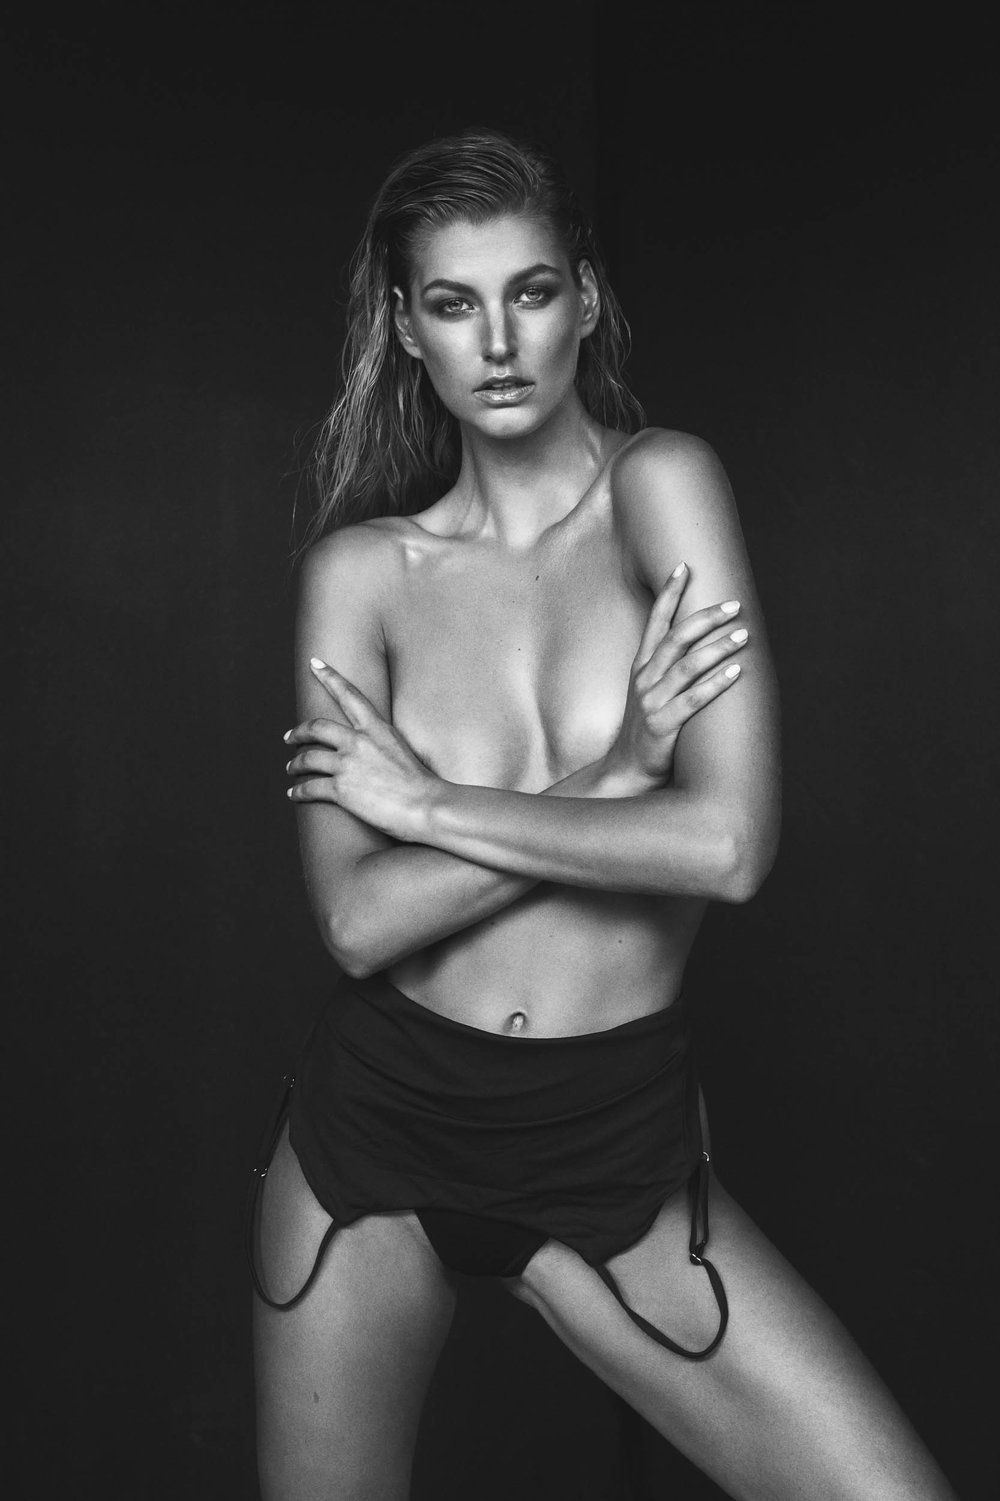 Fashion Model Mary Vitinaros photographed in black and white by Nick Walters at Lumi Studio2.jpg